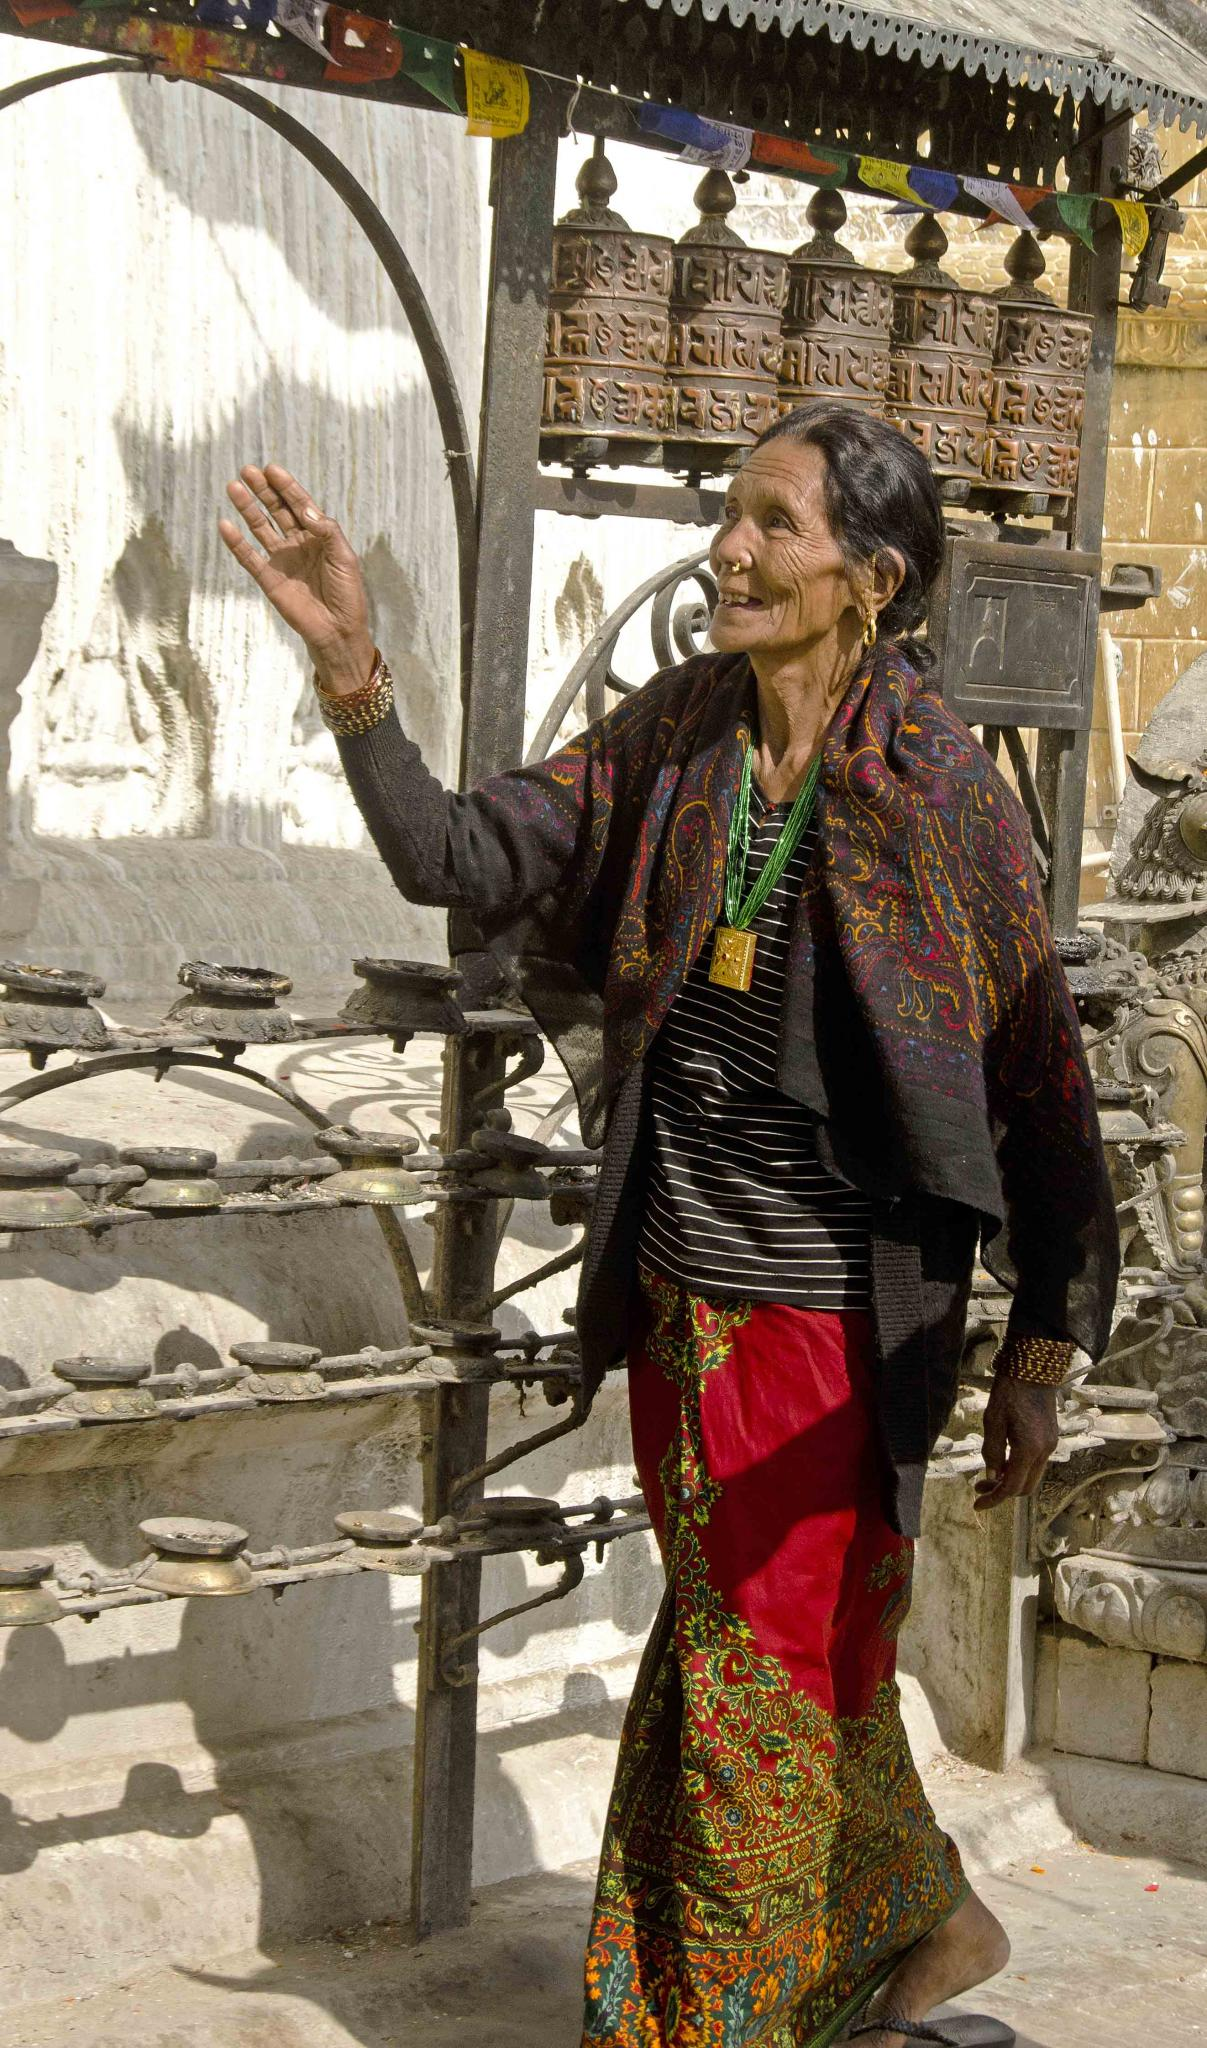 Anyone been up to Nepal  recently?-tibetain-lady-jpg